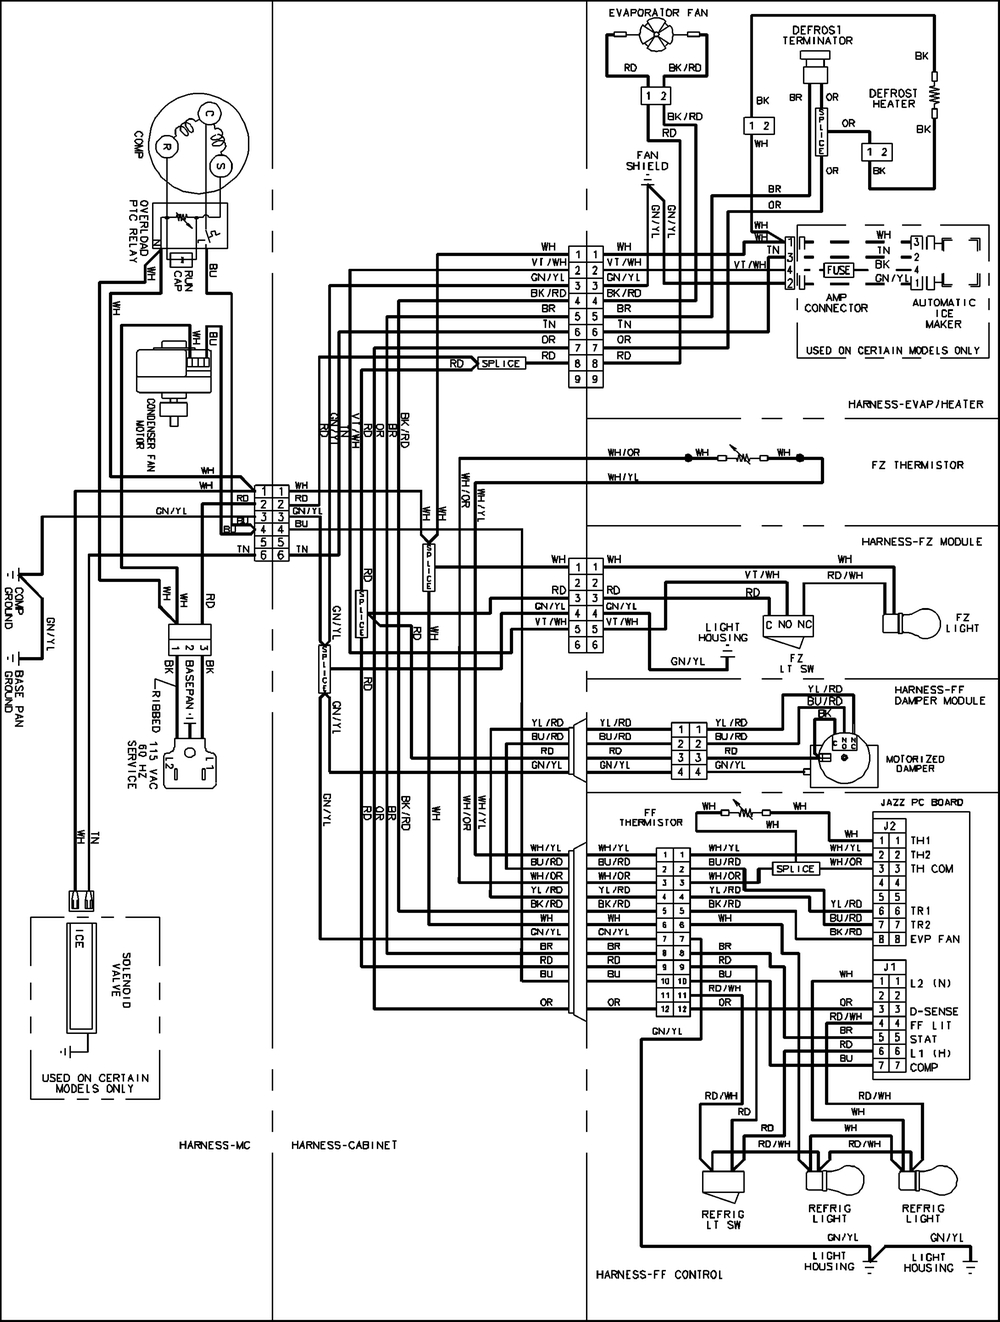 amana ptac wiring diagram Collection-Amana Refrigerator Wiring Diagram Teamninjaz Me And 1-k